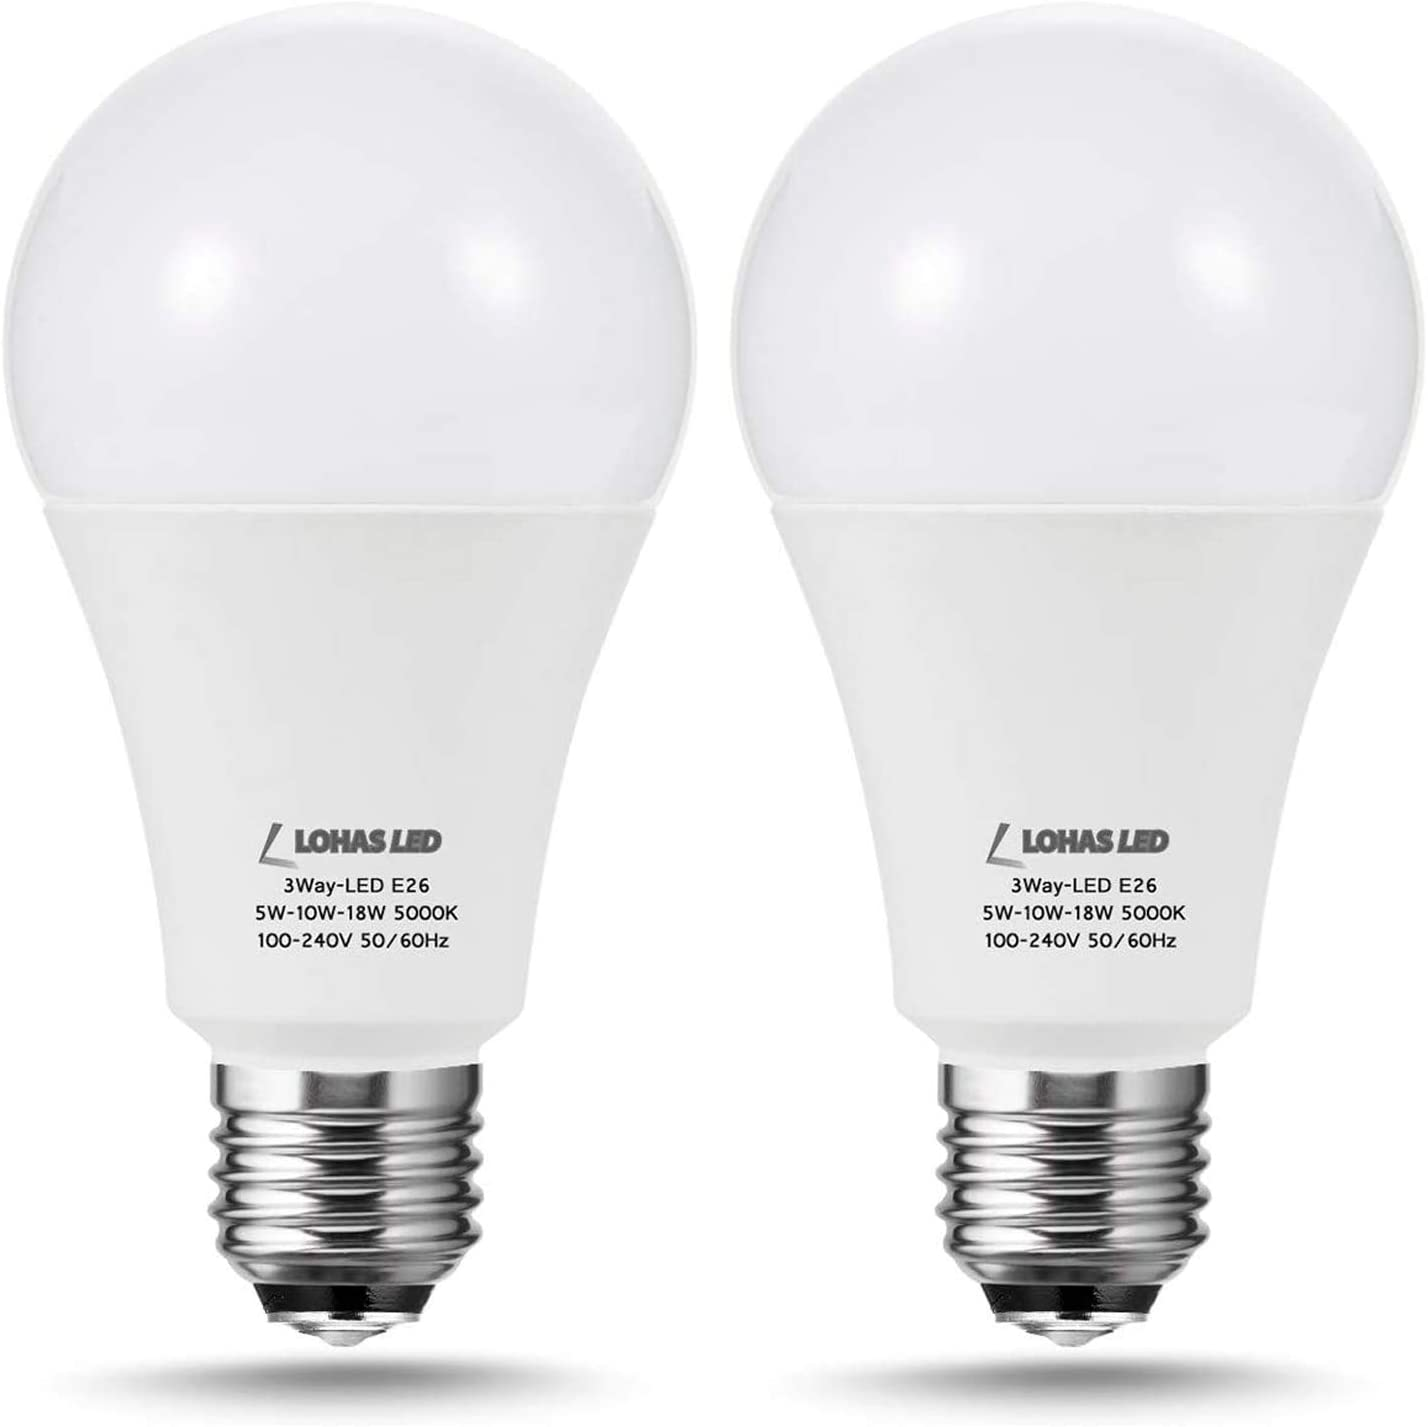 LOHAS 3-Way A21 LED Light Bulb